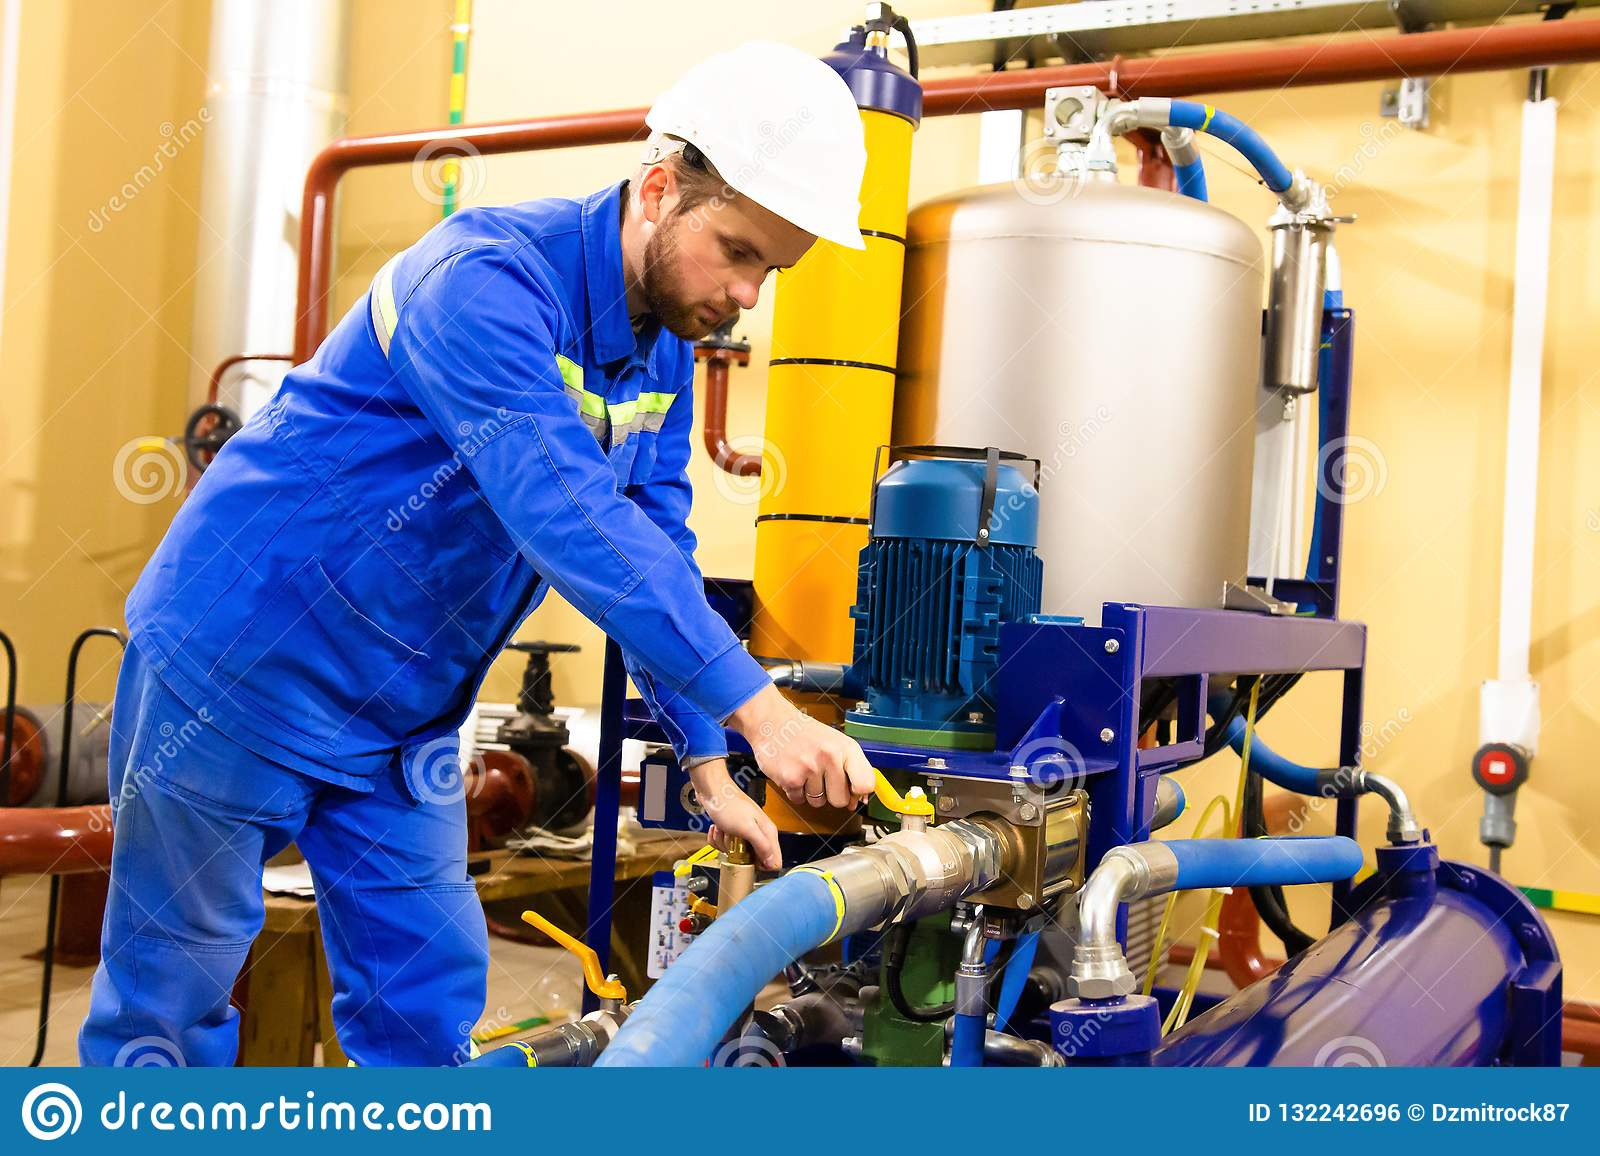 Mechanical engineer services industrial oil equipment on gas refinery.